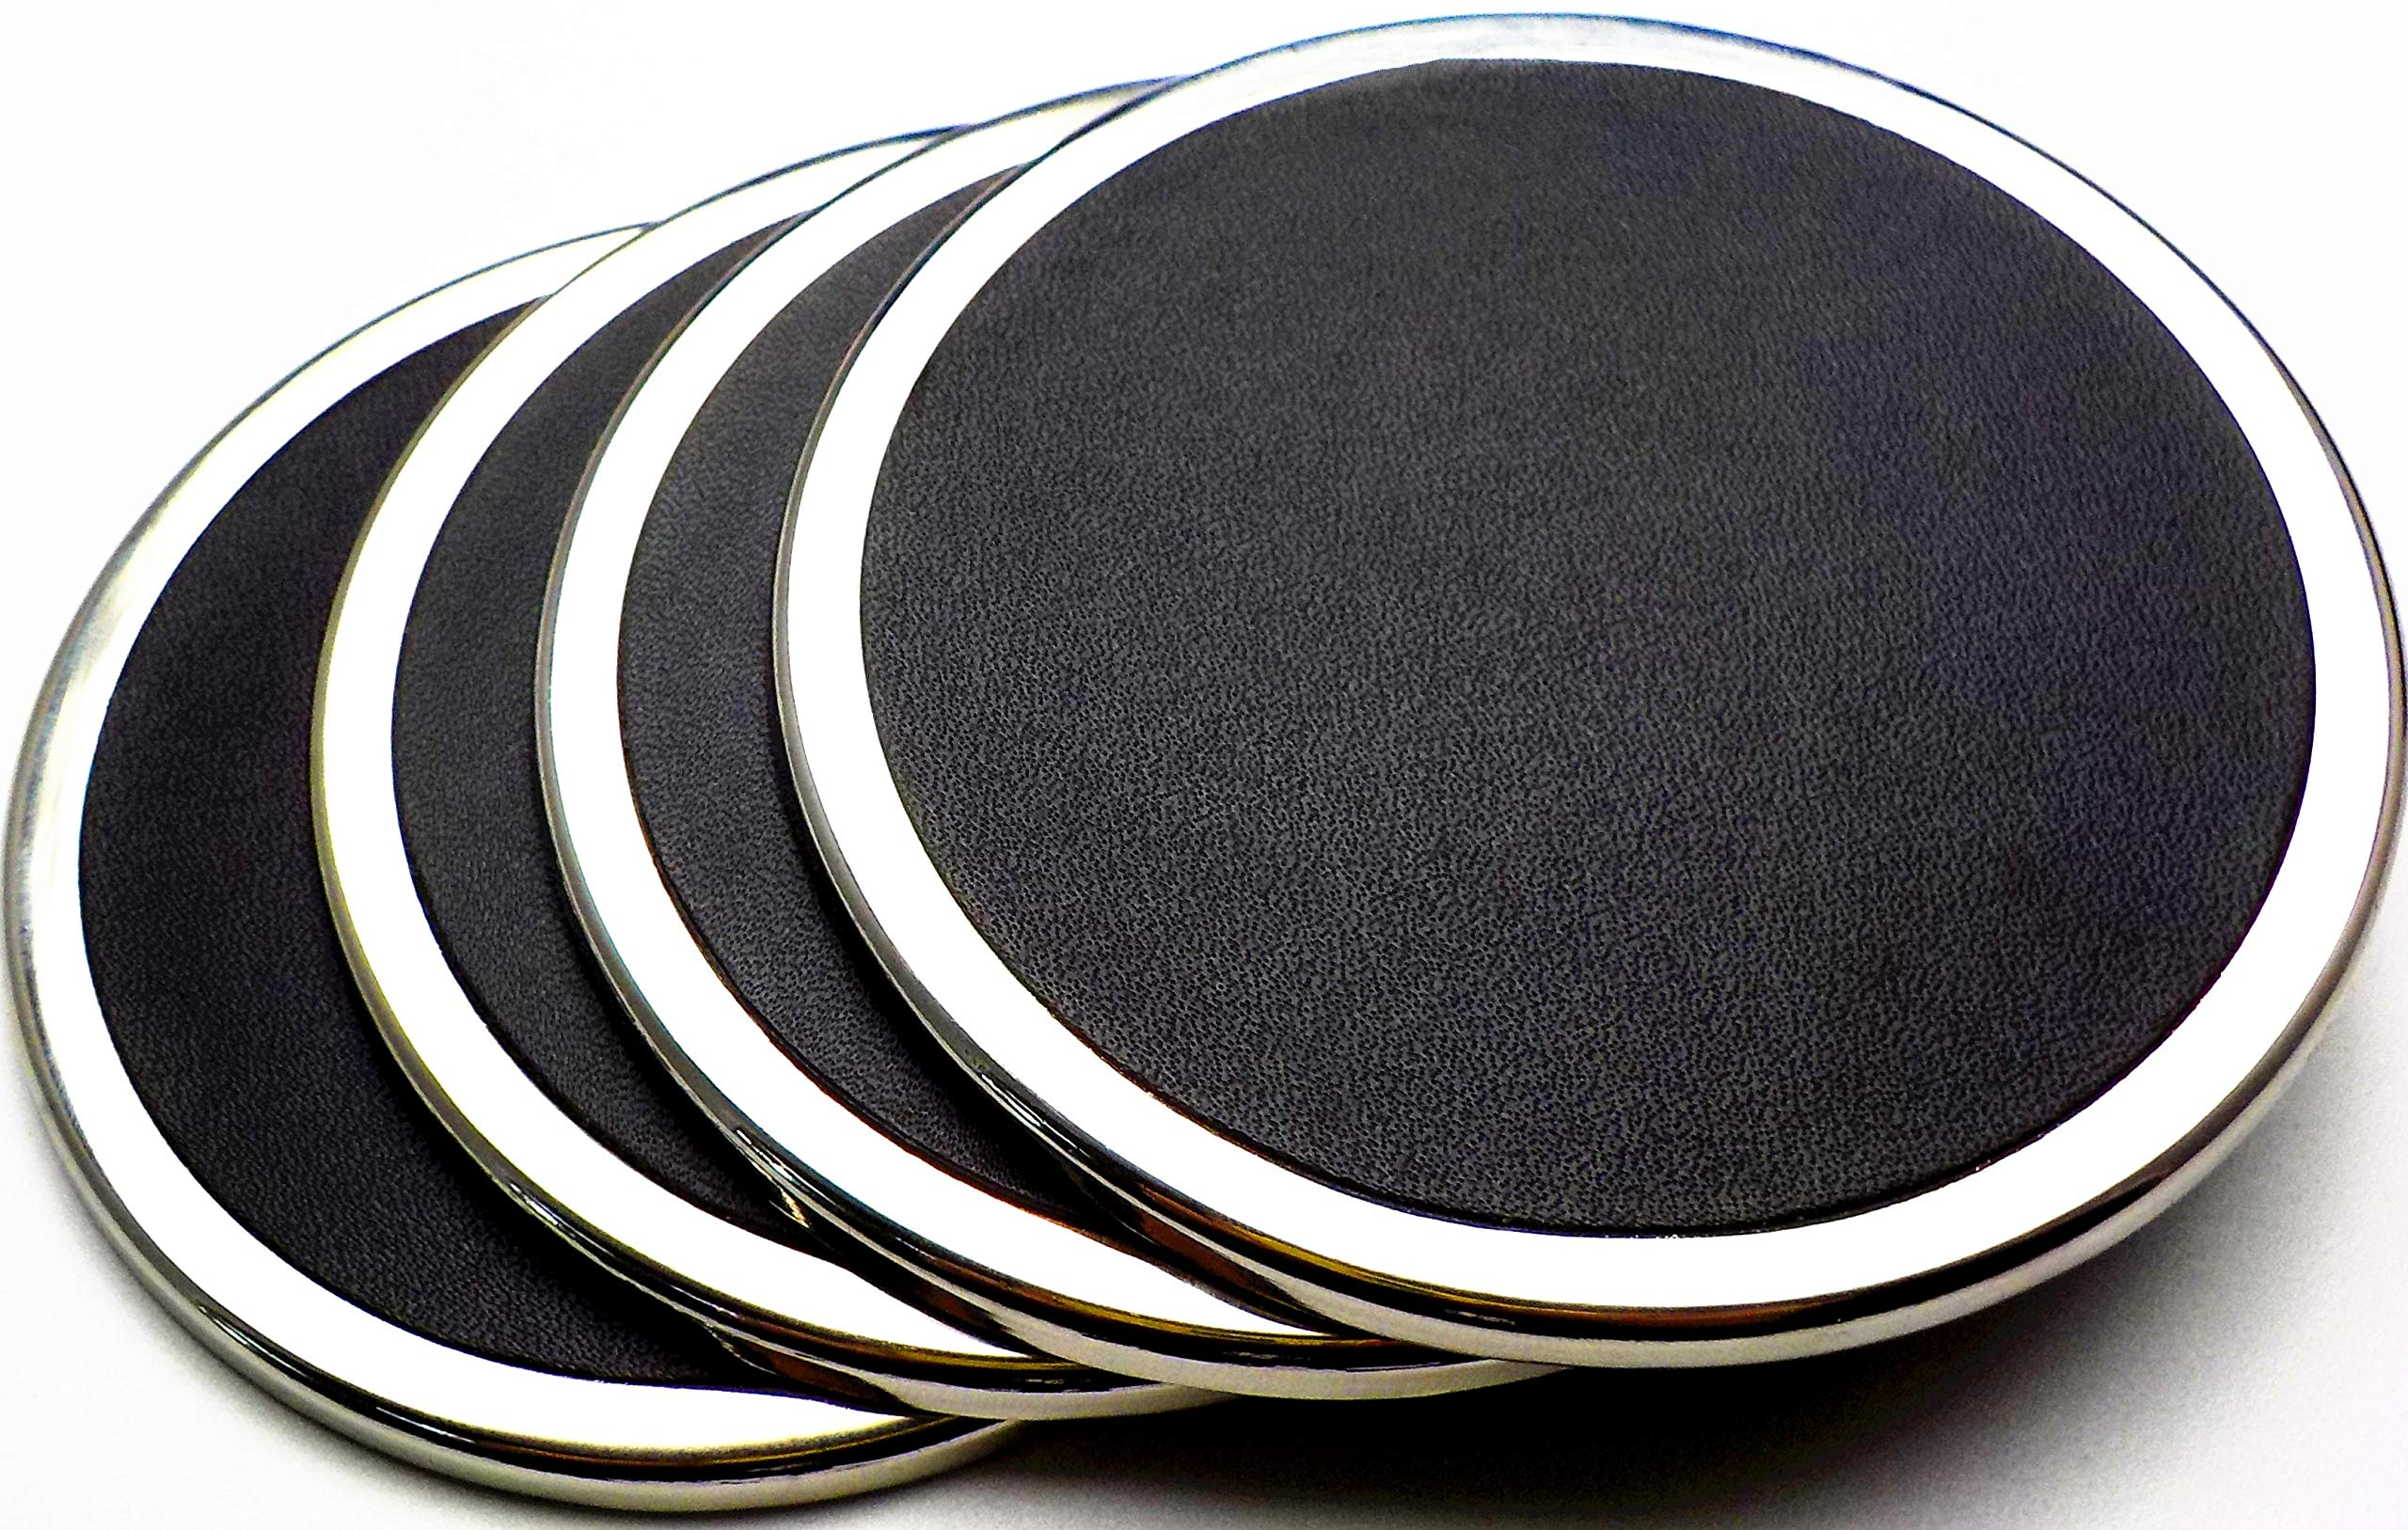 YouShop Luxury Coasters for Drinks - Premium Metal, Black Leather, Velvet Base | Contemporary and Clean Style, Modern Coaster Set for Living Room, Kitchen, or Office Cup Coasters | Protect Furniture by YouShop (Image #3)